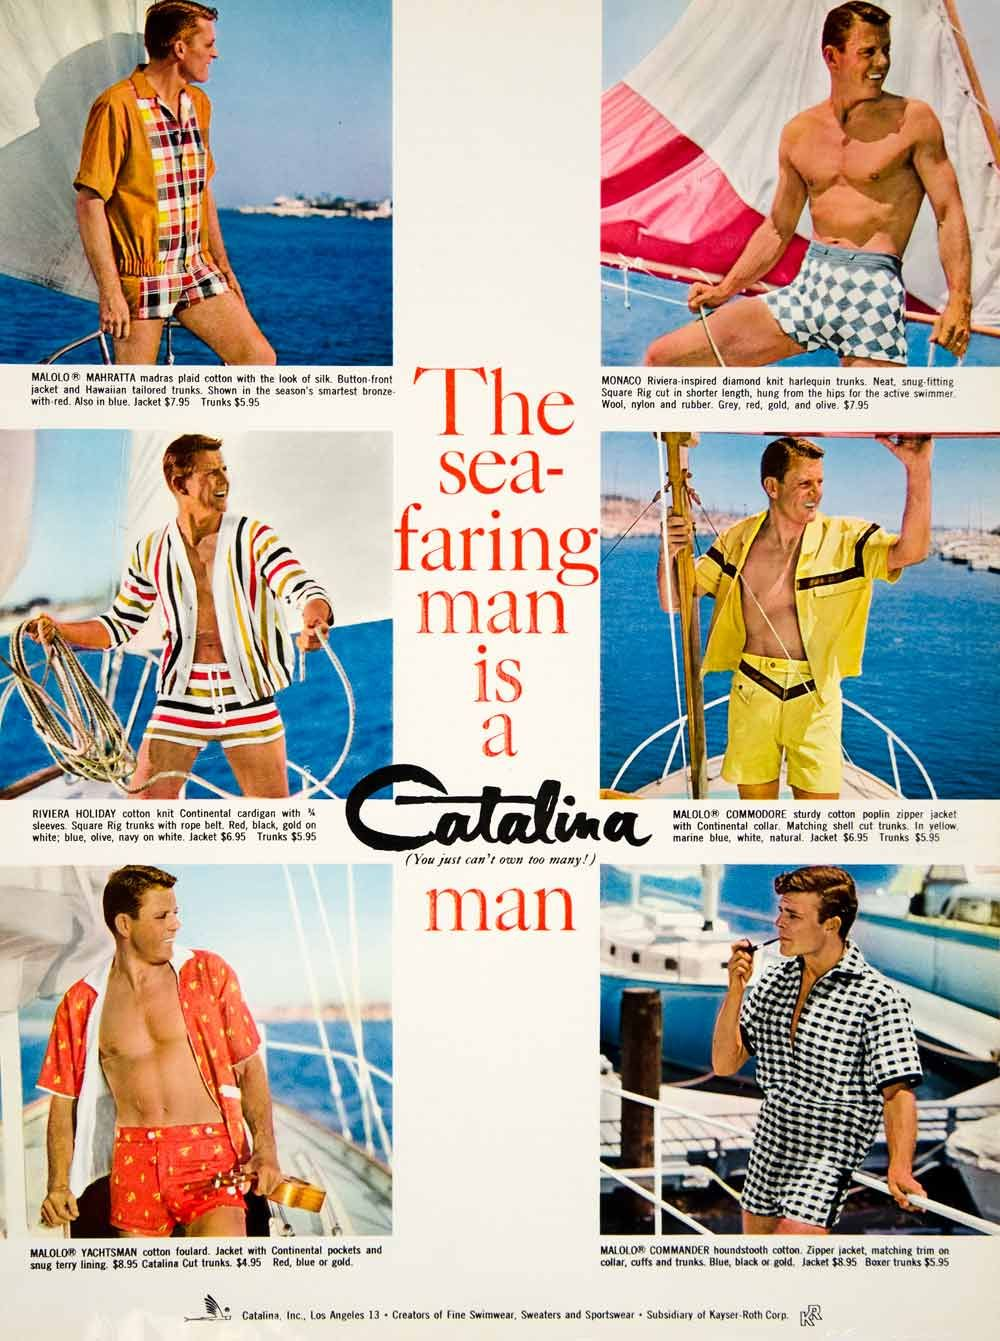 c2347a2138 1960 Ad Vintage Catalina Swim Trunks Suit Swimsuit Mad Men Fashion Style  Sailing